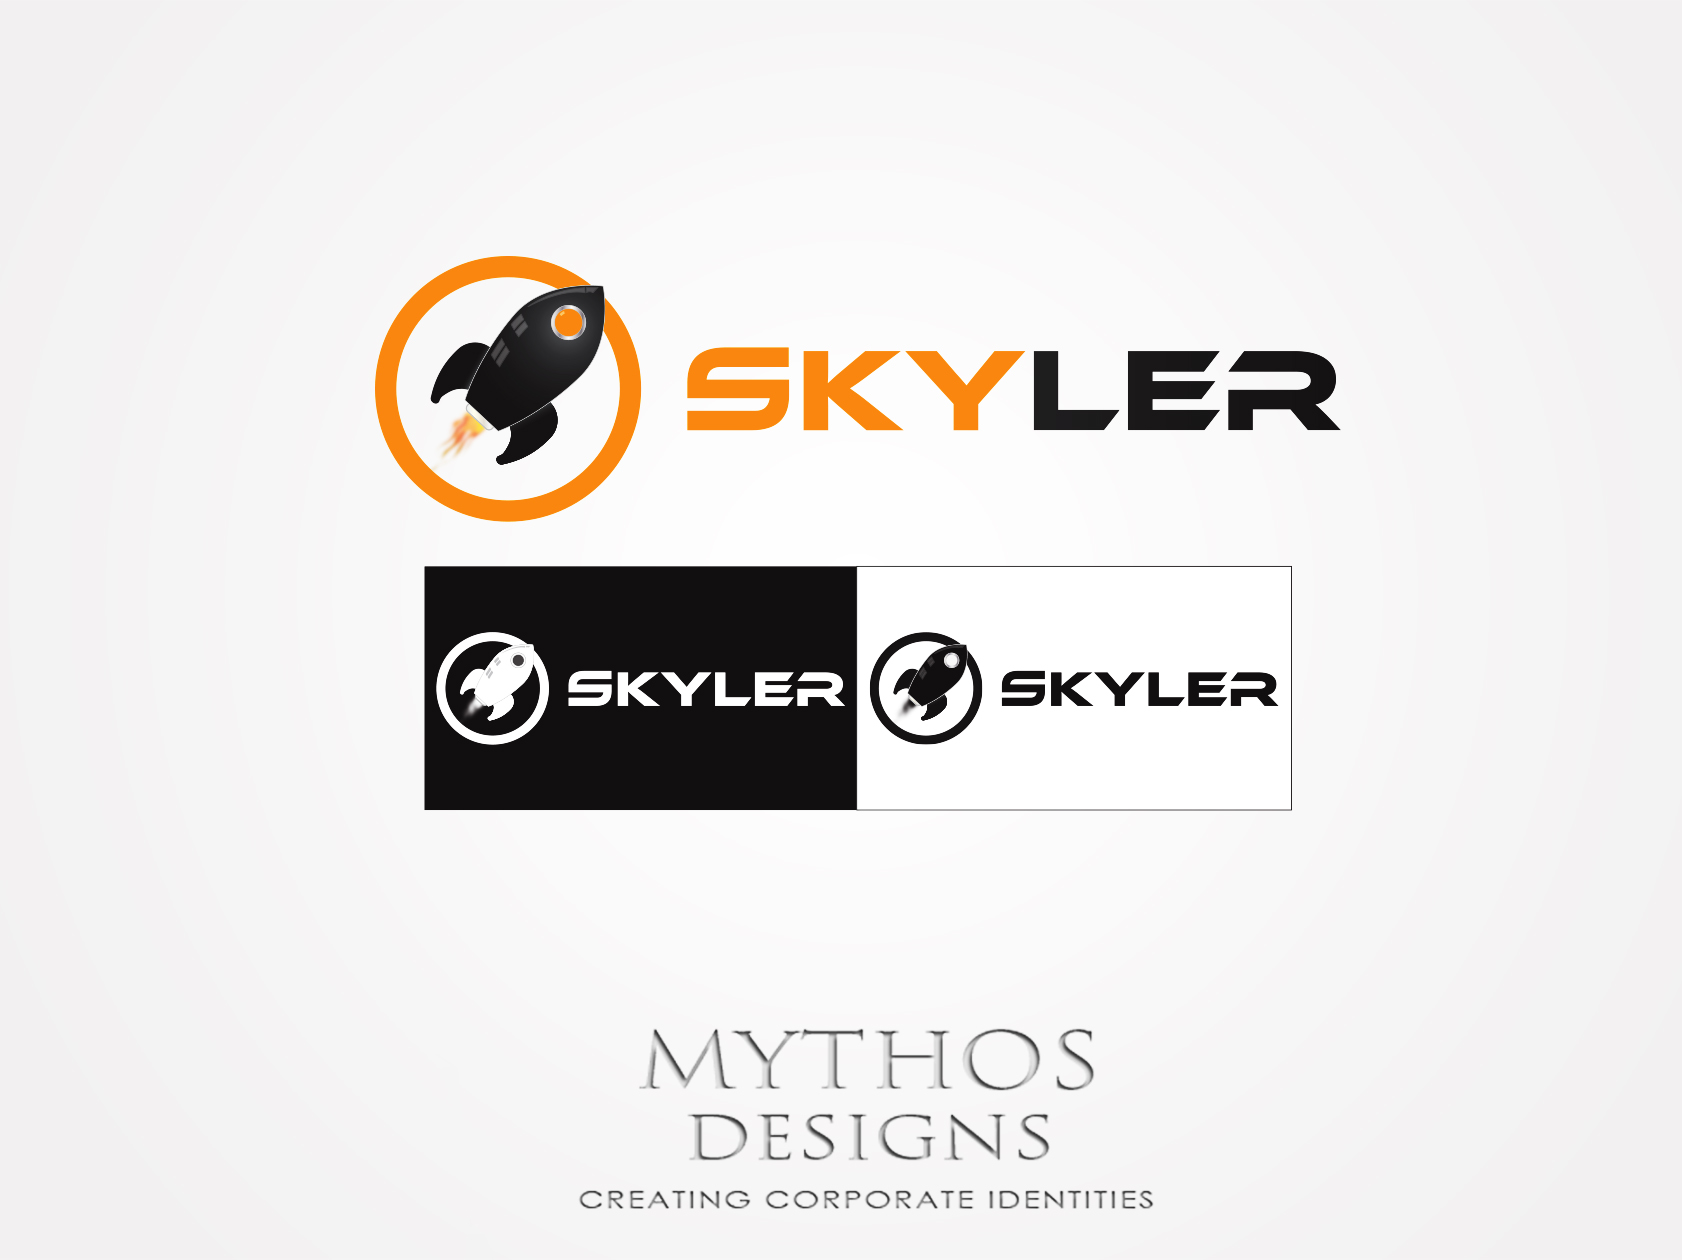 Logo Design by Mythos Designs - Entry No. 156 in the Logo Design Contest Artistic Logo Design for Skyler.Asia.